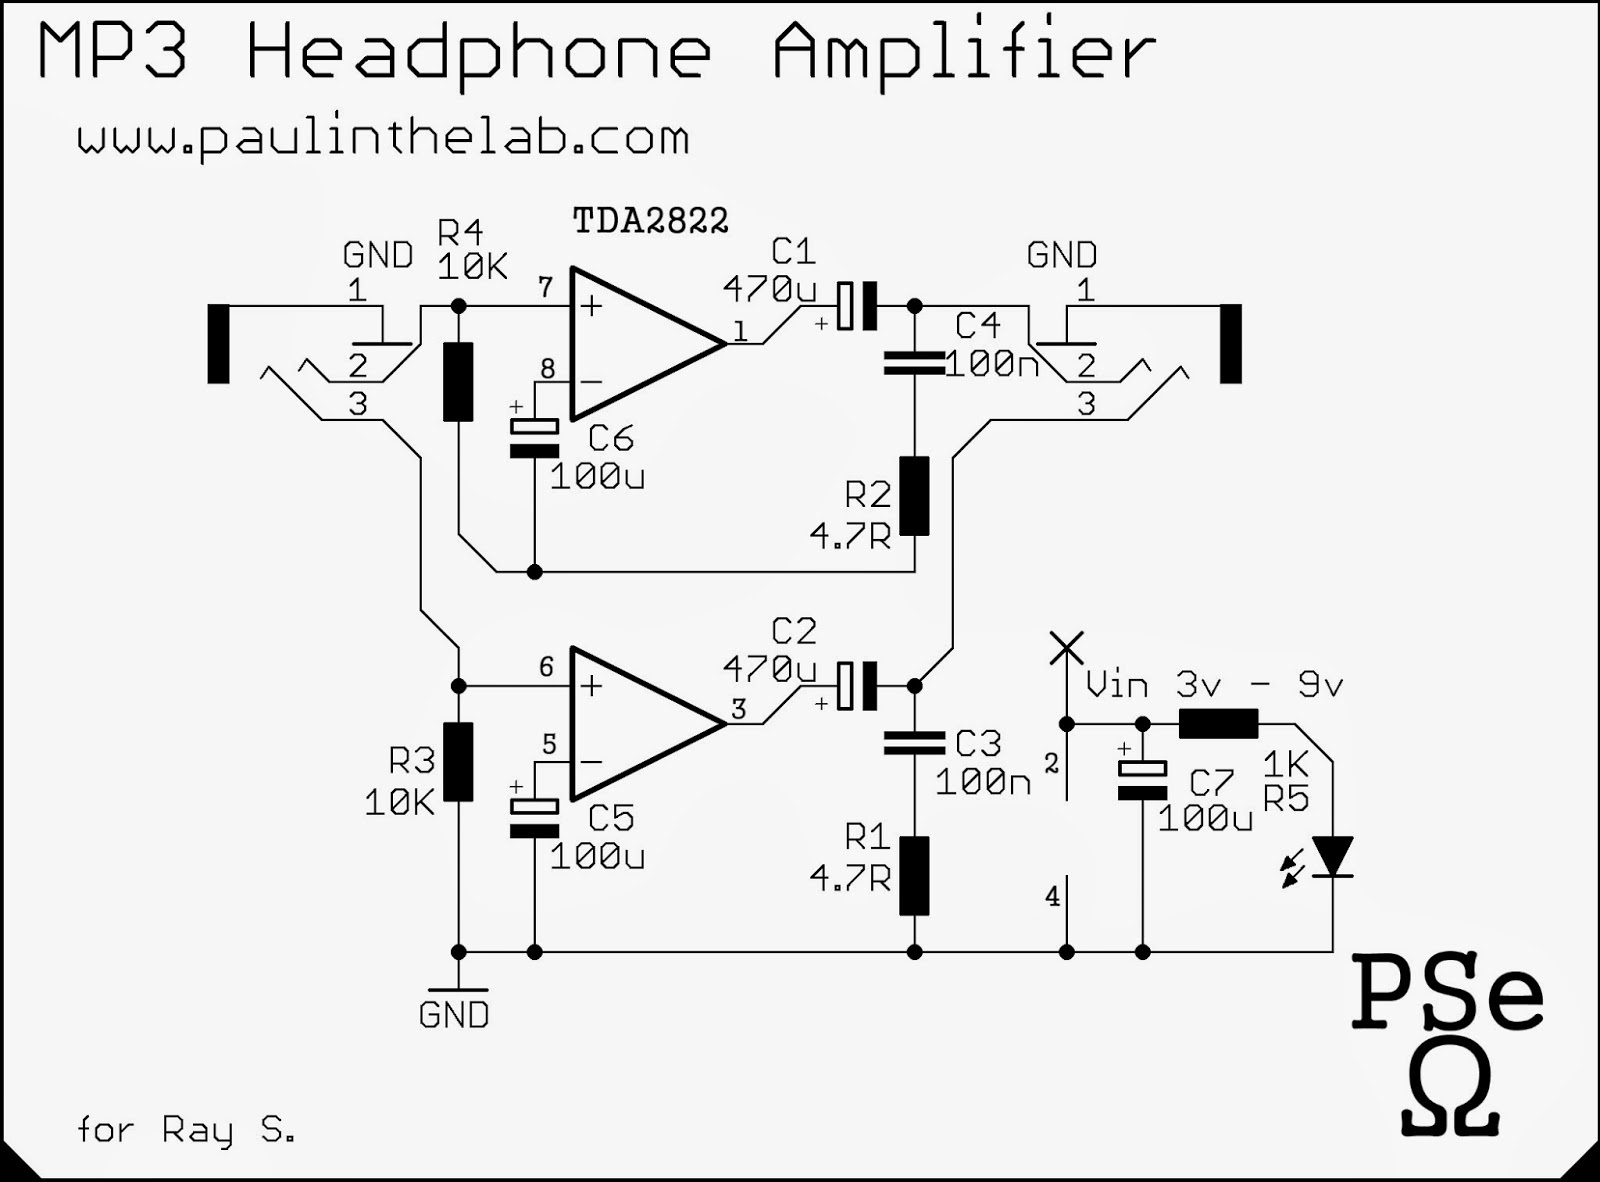 Tube Otl Headphone Amplifier Circuit Diagram Amplifiercircuit Similiar Schematic Keywords Paul In The Lab Mp3 Ipod Tda2822m